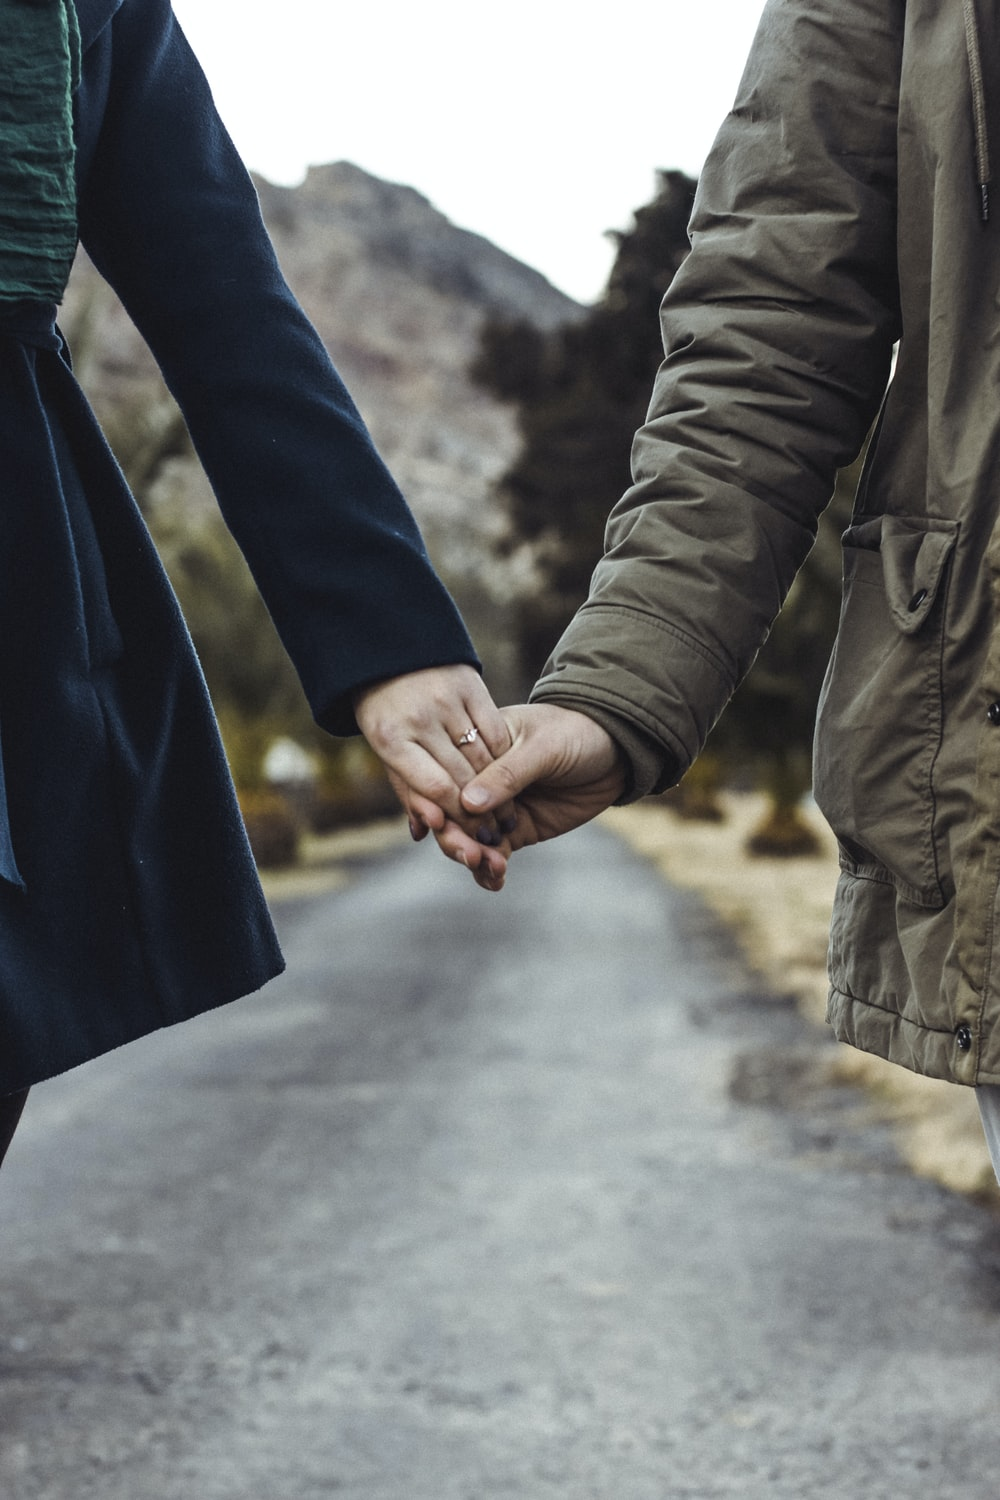 two person holding hands while walking on asphalt road